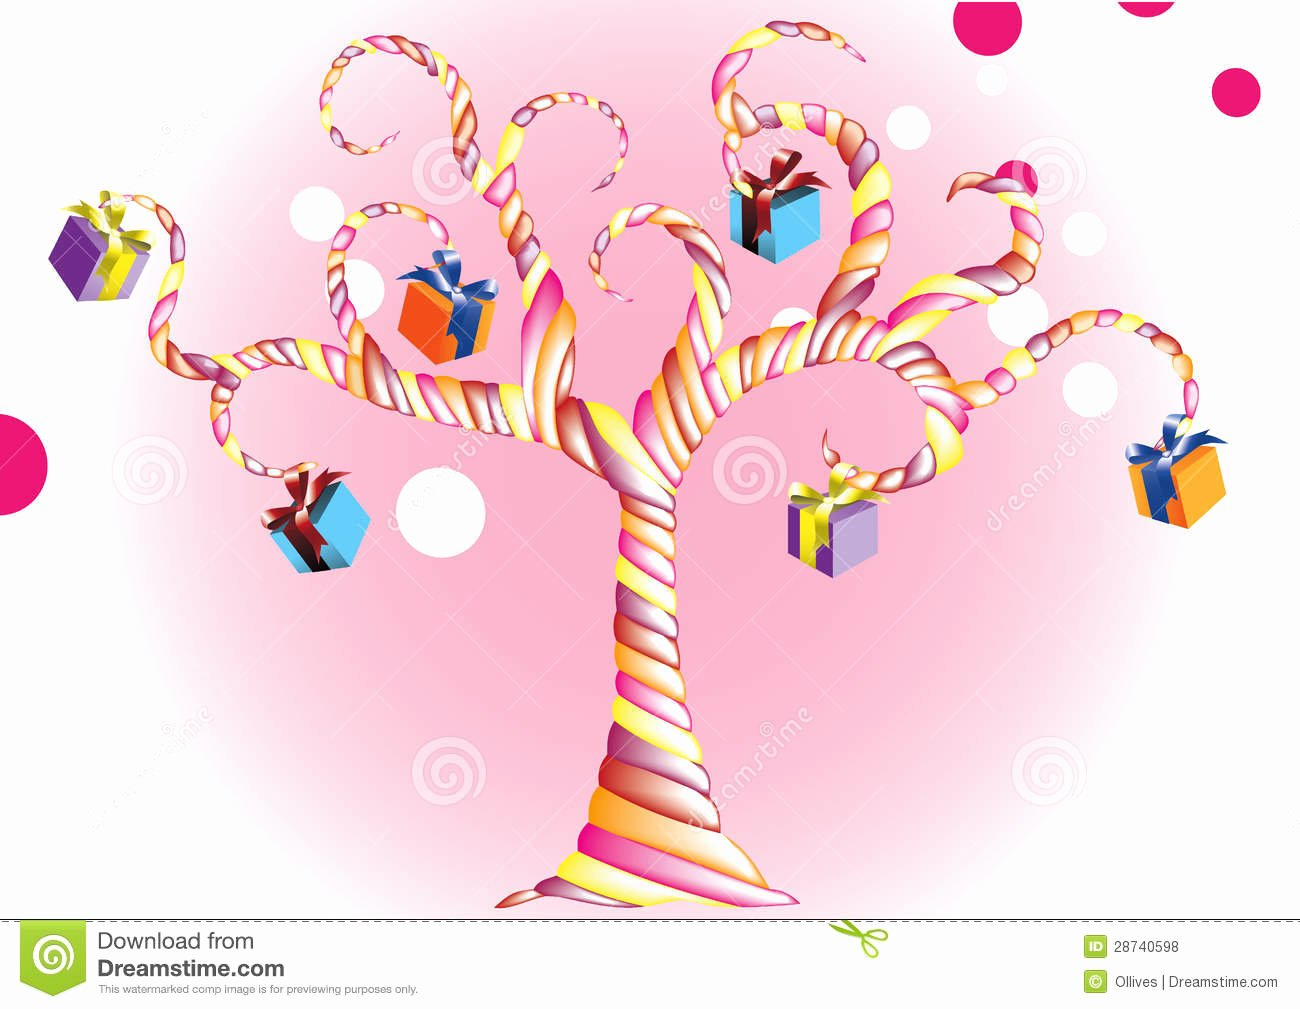 Happy Birthday Candy Images Elegant Vector Happy Birthday Candy Tree with A Colorful G Royalty